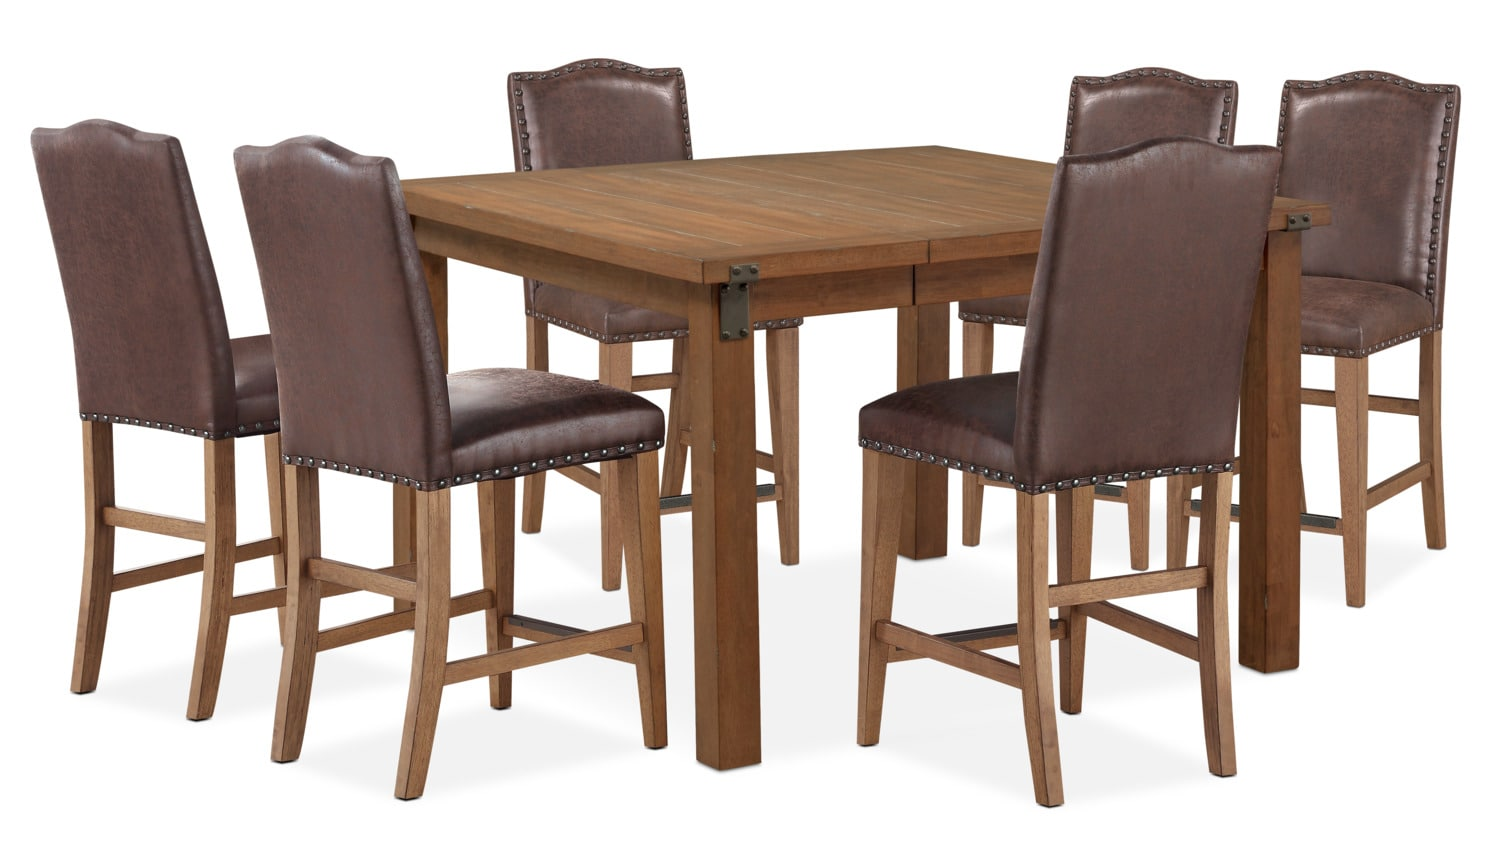 Dining Room Furniture - Hampton Counter-Height Dining Table and 6 Upholstered Stools